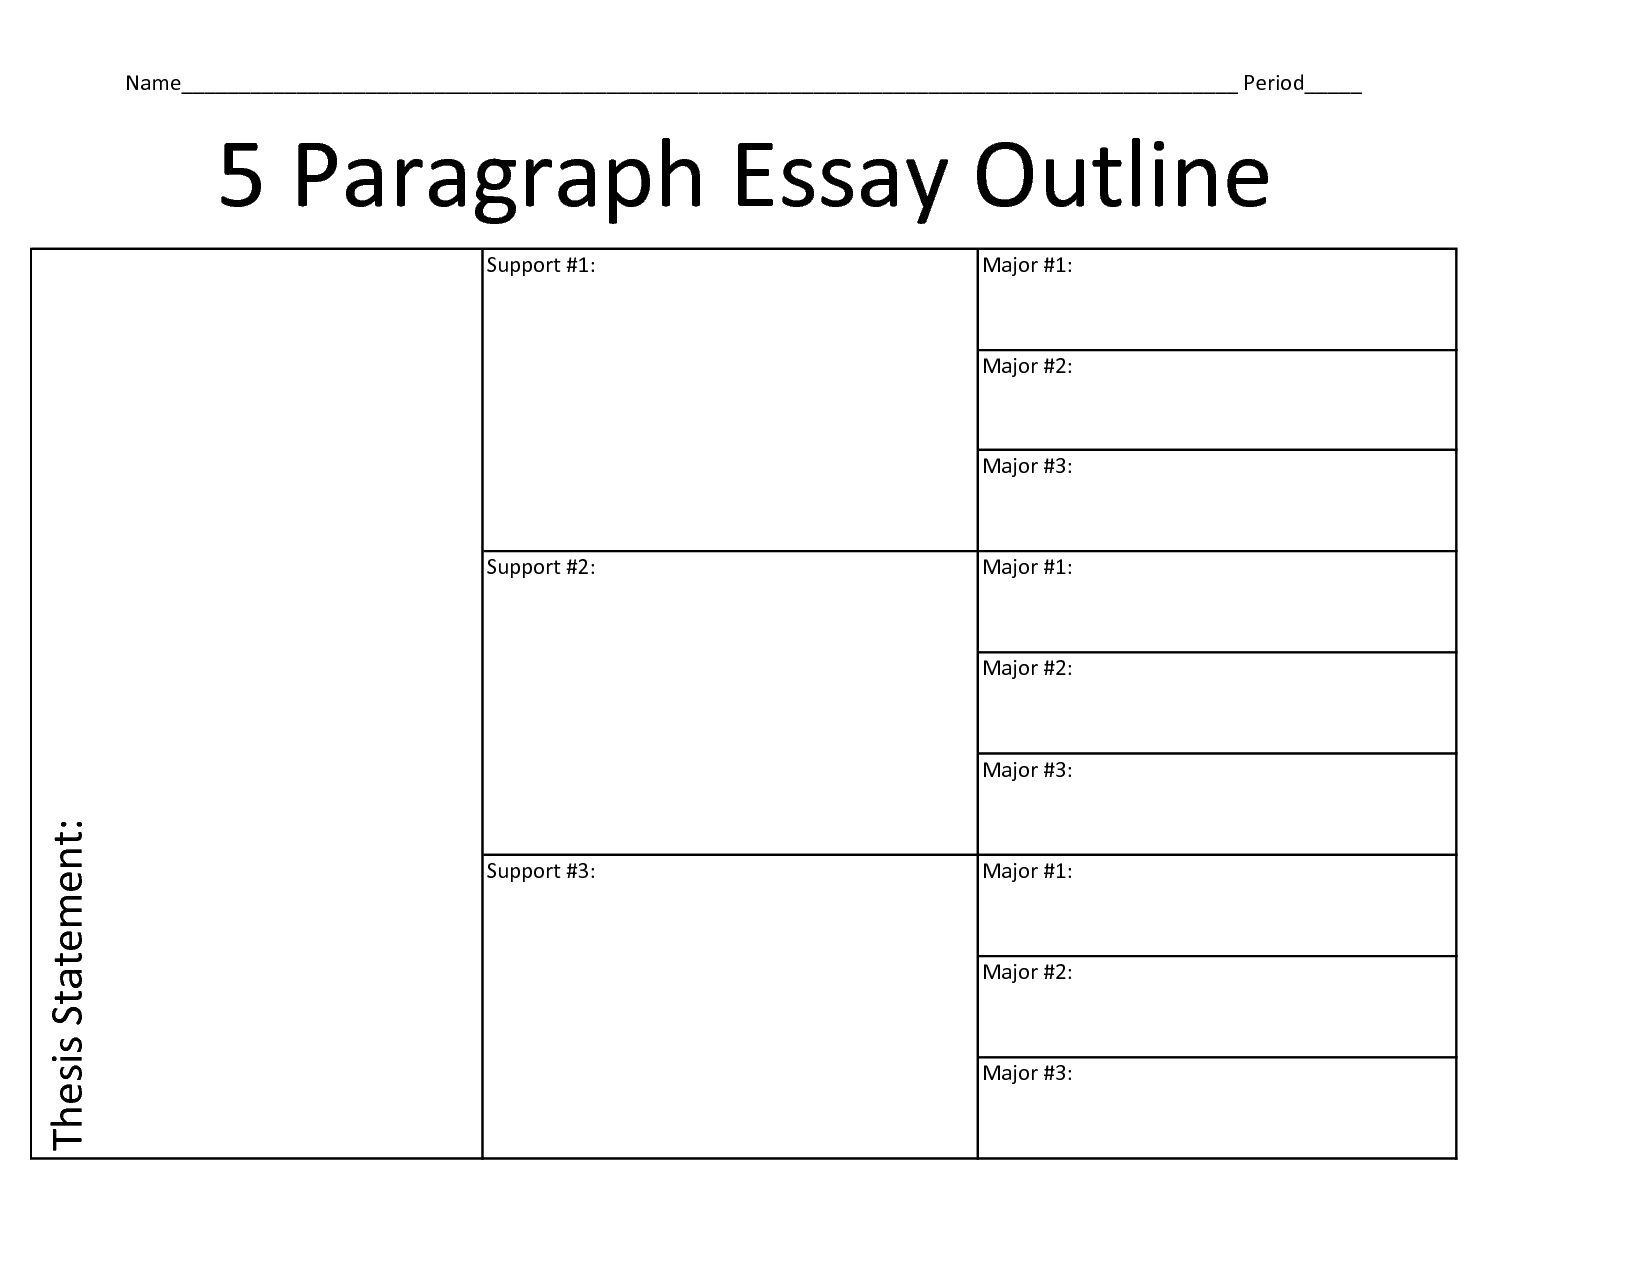 019 Graphic Organizers Executive Functioning Mr Brown039s Paragraph Essay Outline L Amazing 5 Google Doc Printable High School Full